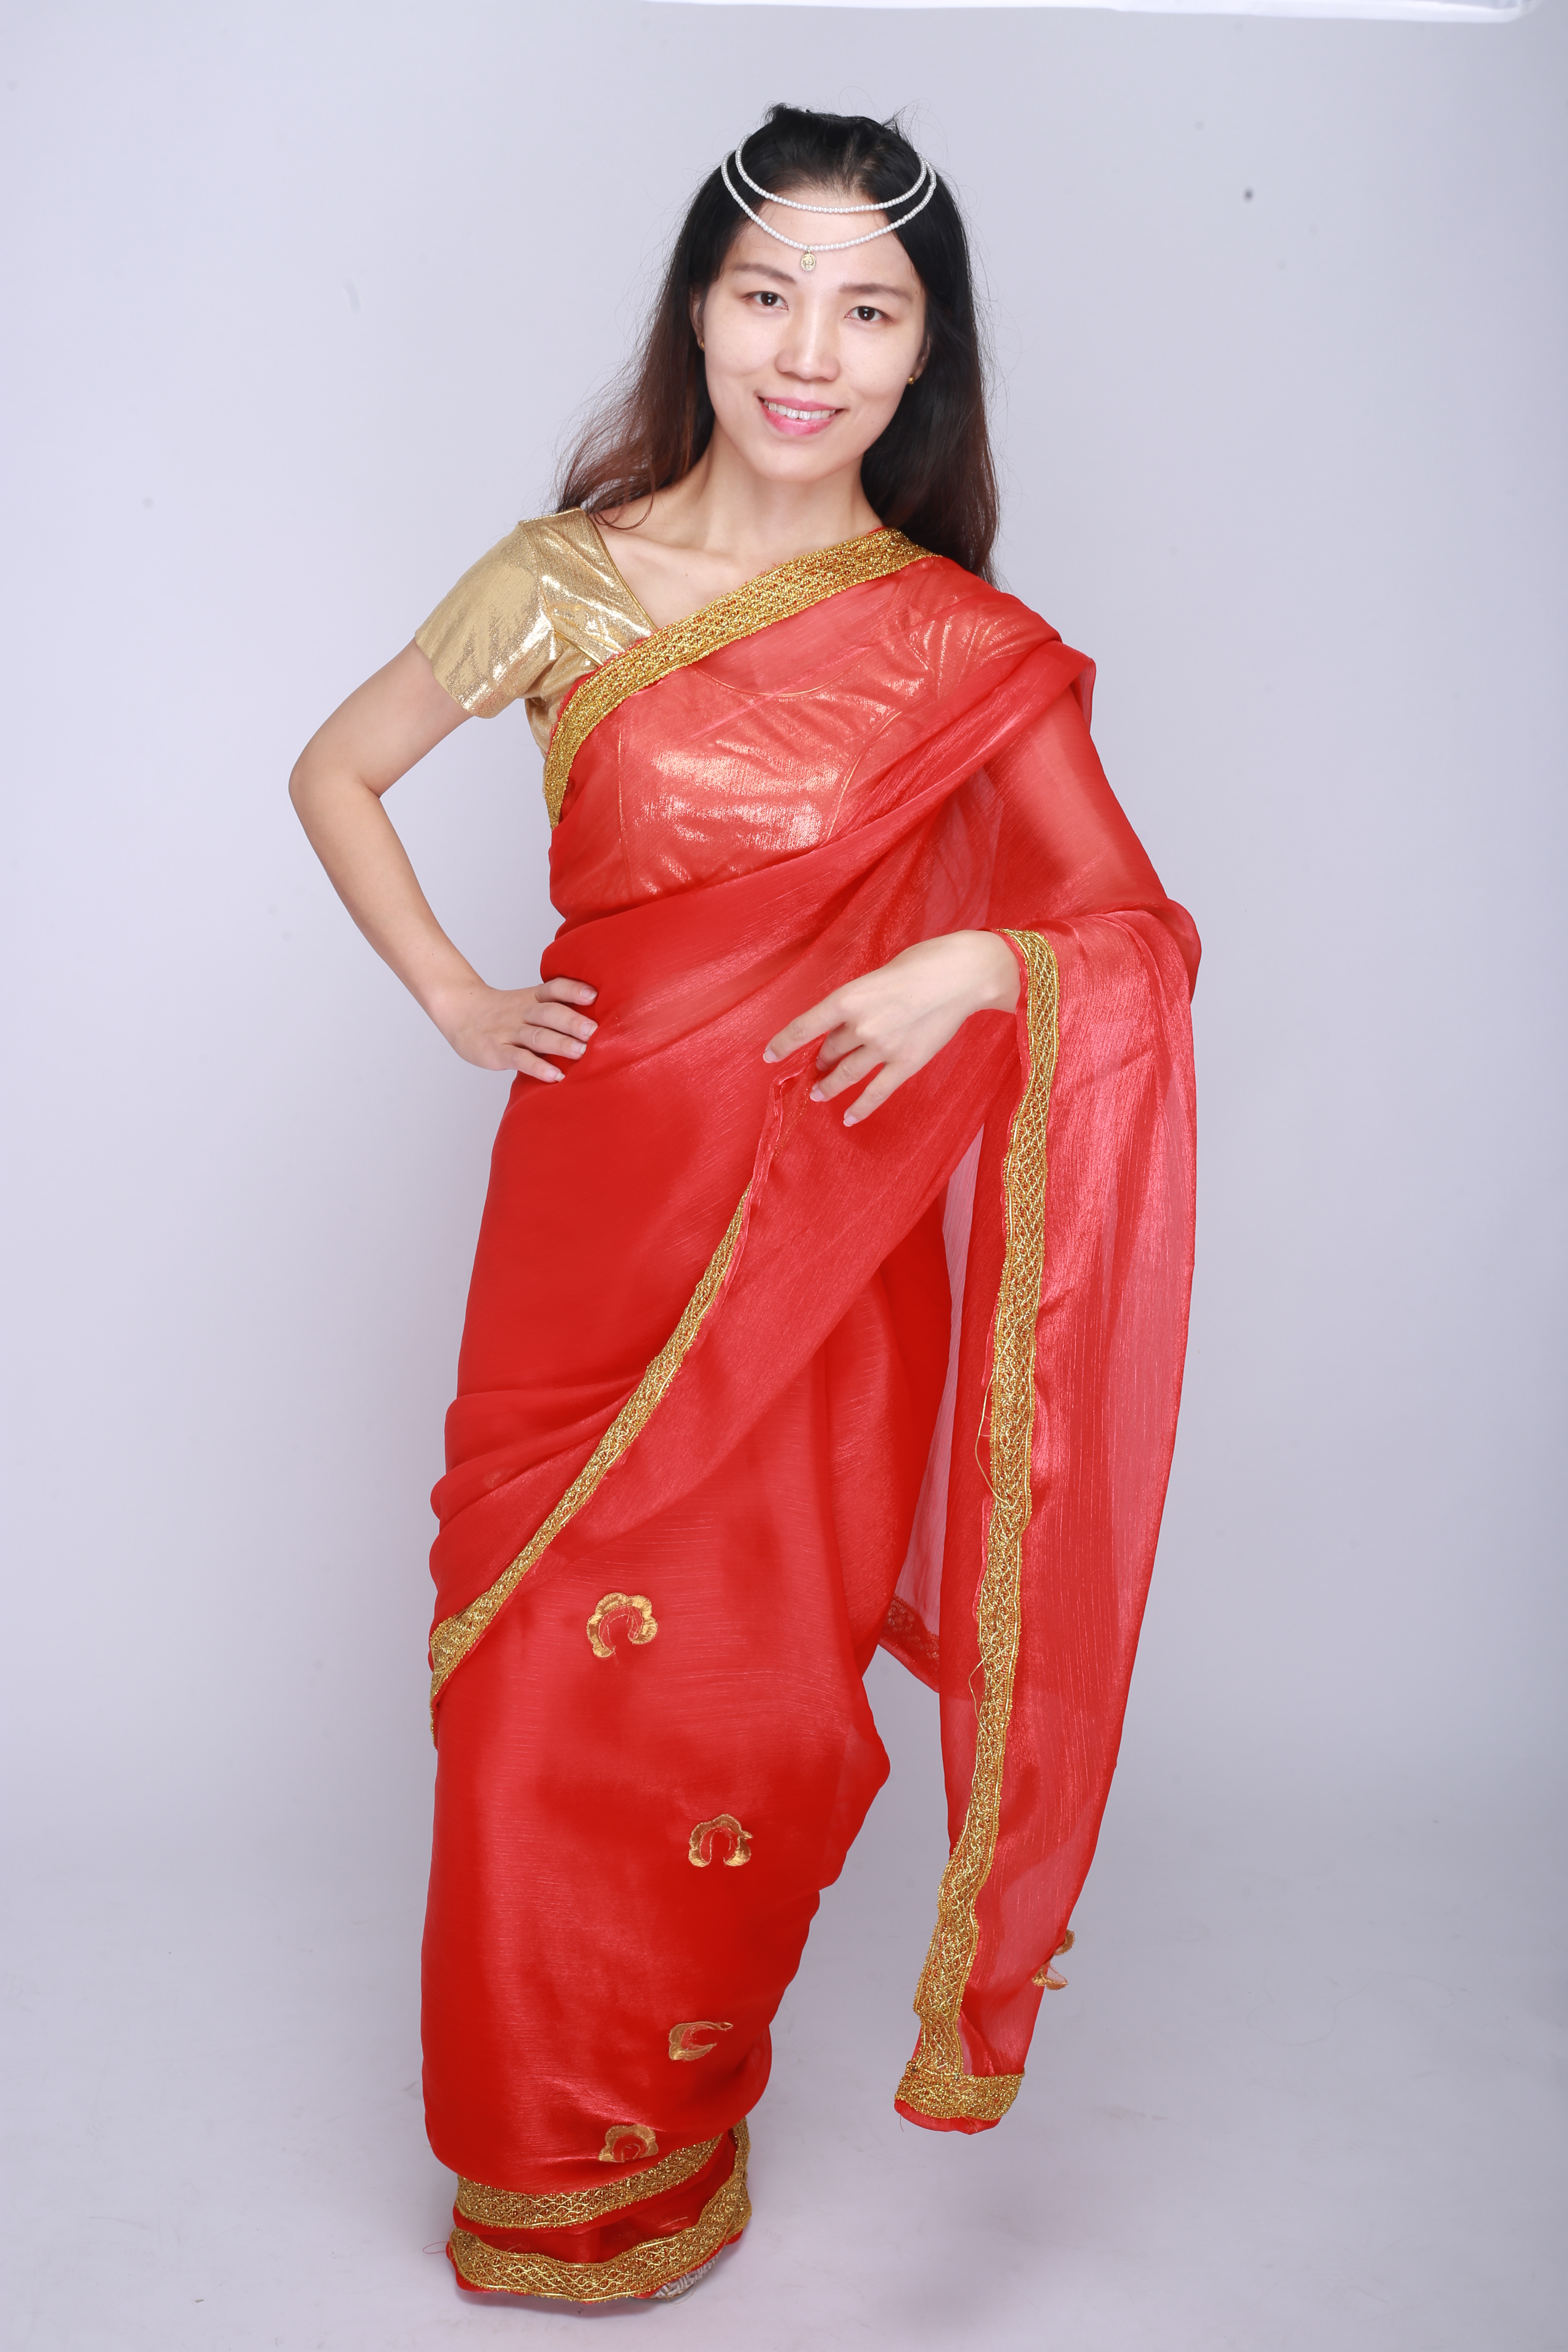 Indian Pakistani Dress Wedding Party Dress Sally For Women Clothing Red In Sari For Women In India India Pakistan Clothing Aliexpress